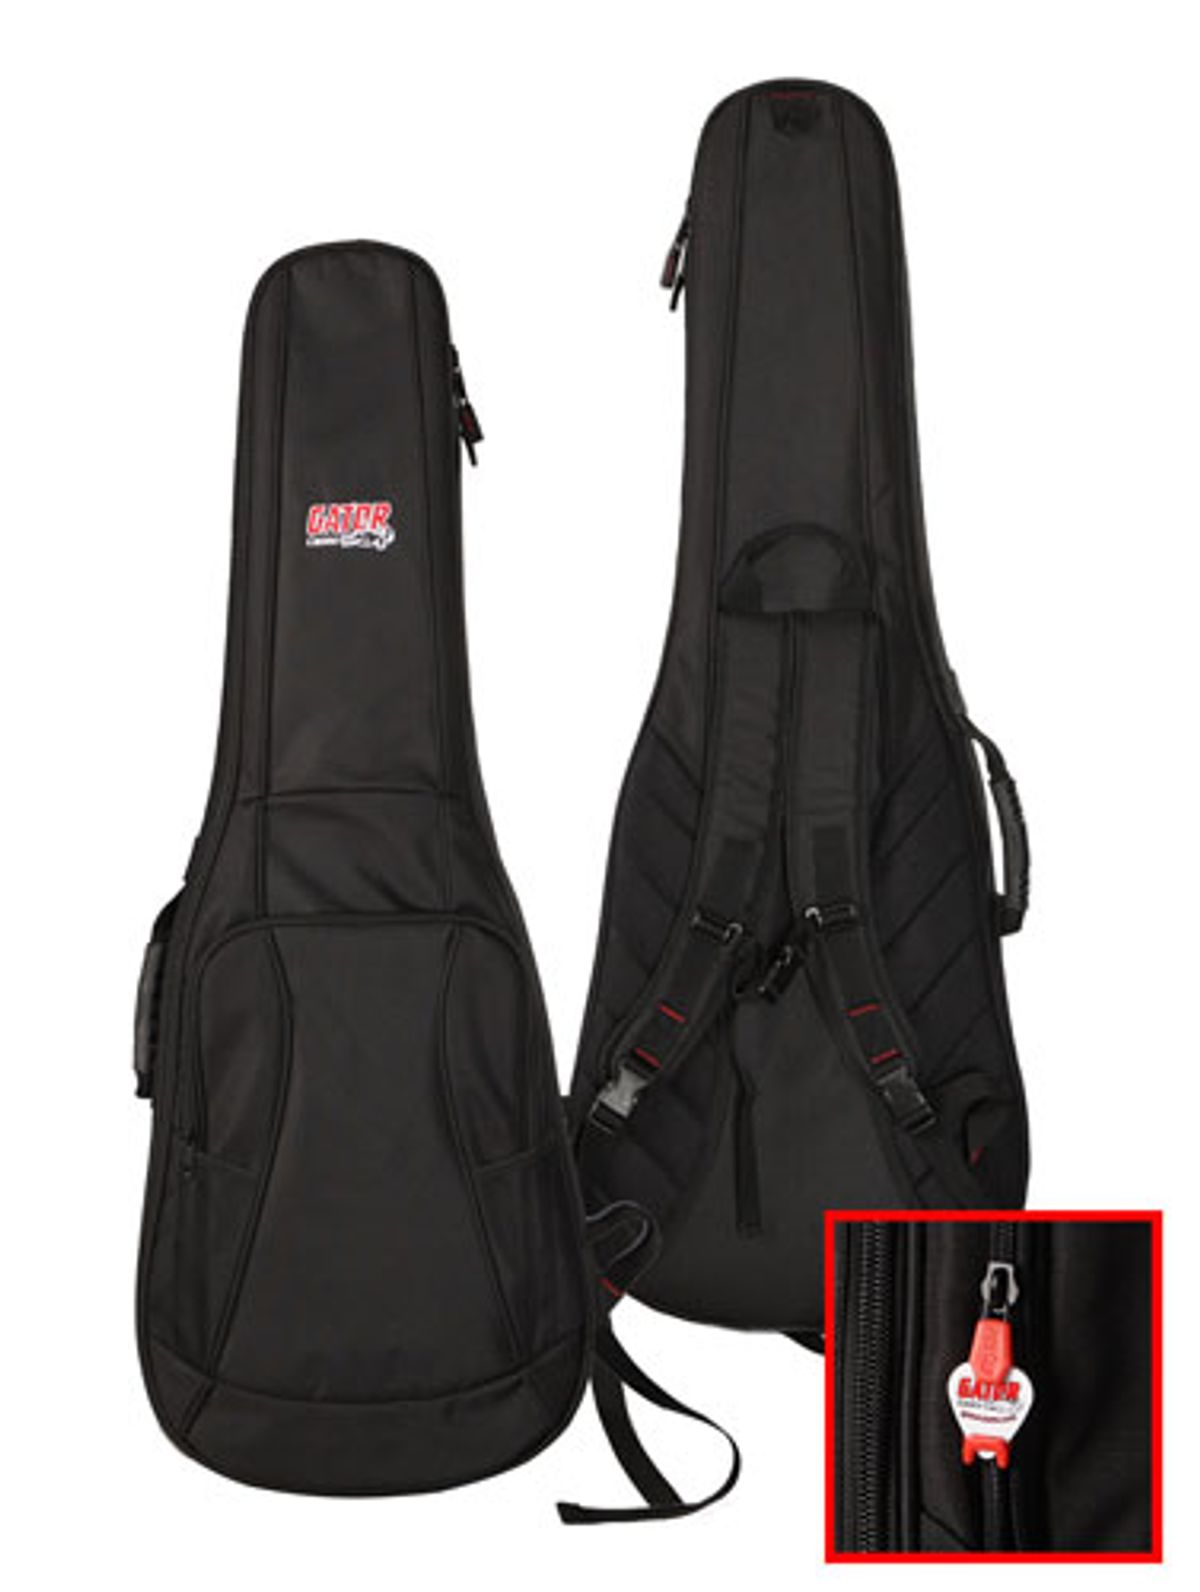 Gator Cases Announces Updated 4G Series, Journeyman Series, and ProGo Gig Bags